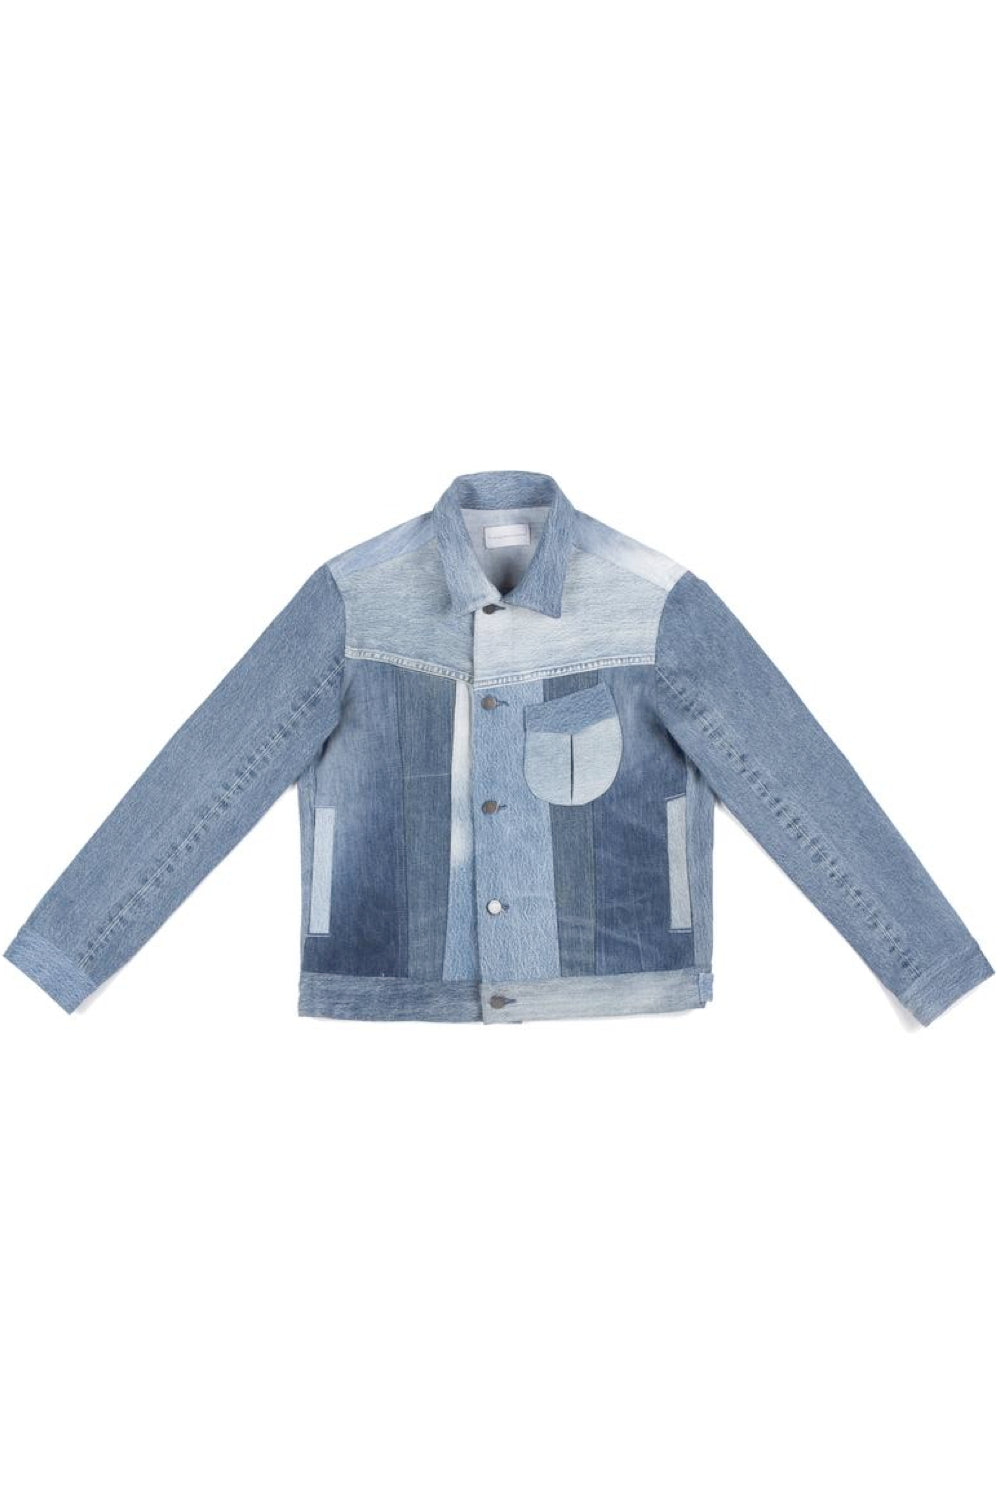 Indigo Denim Motor Jacket